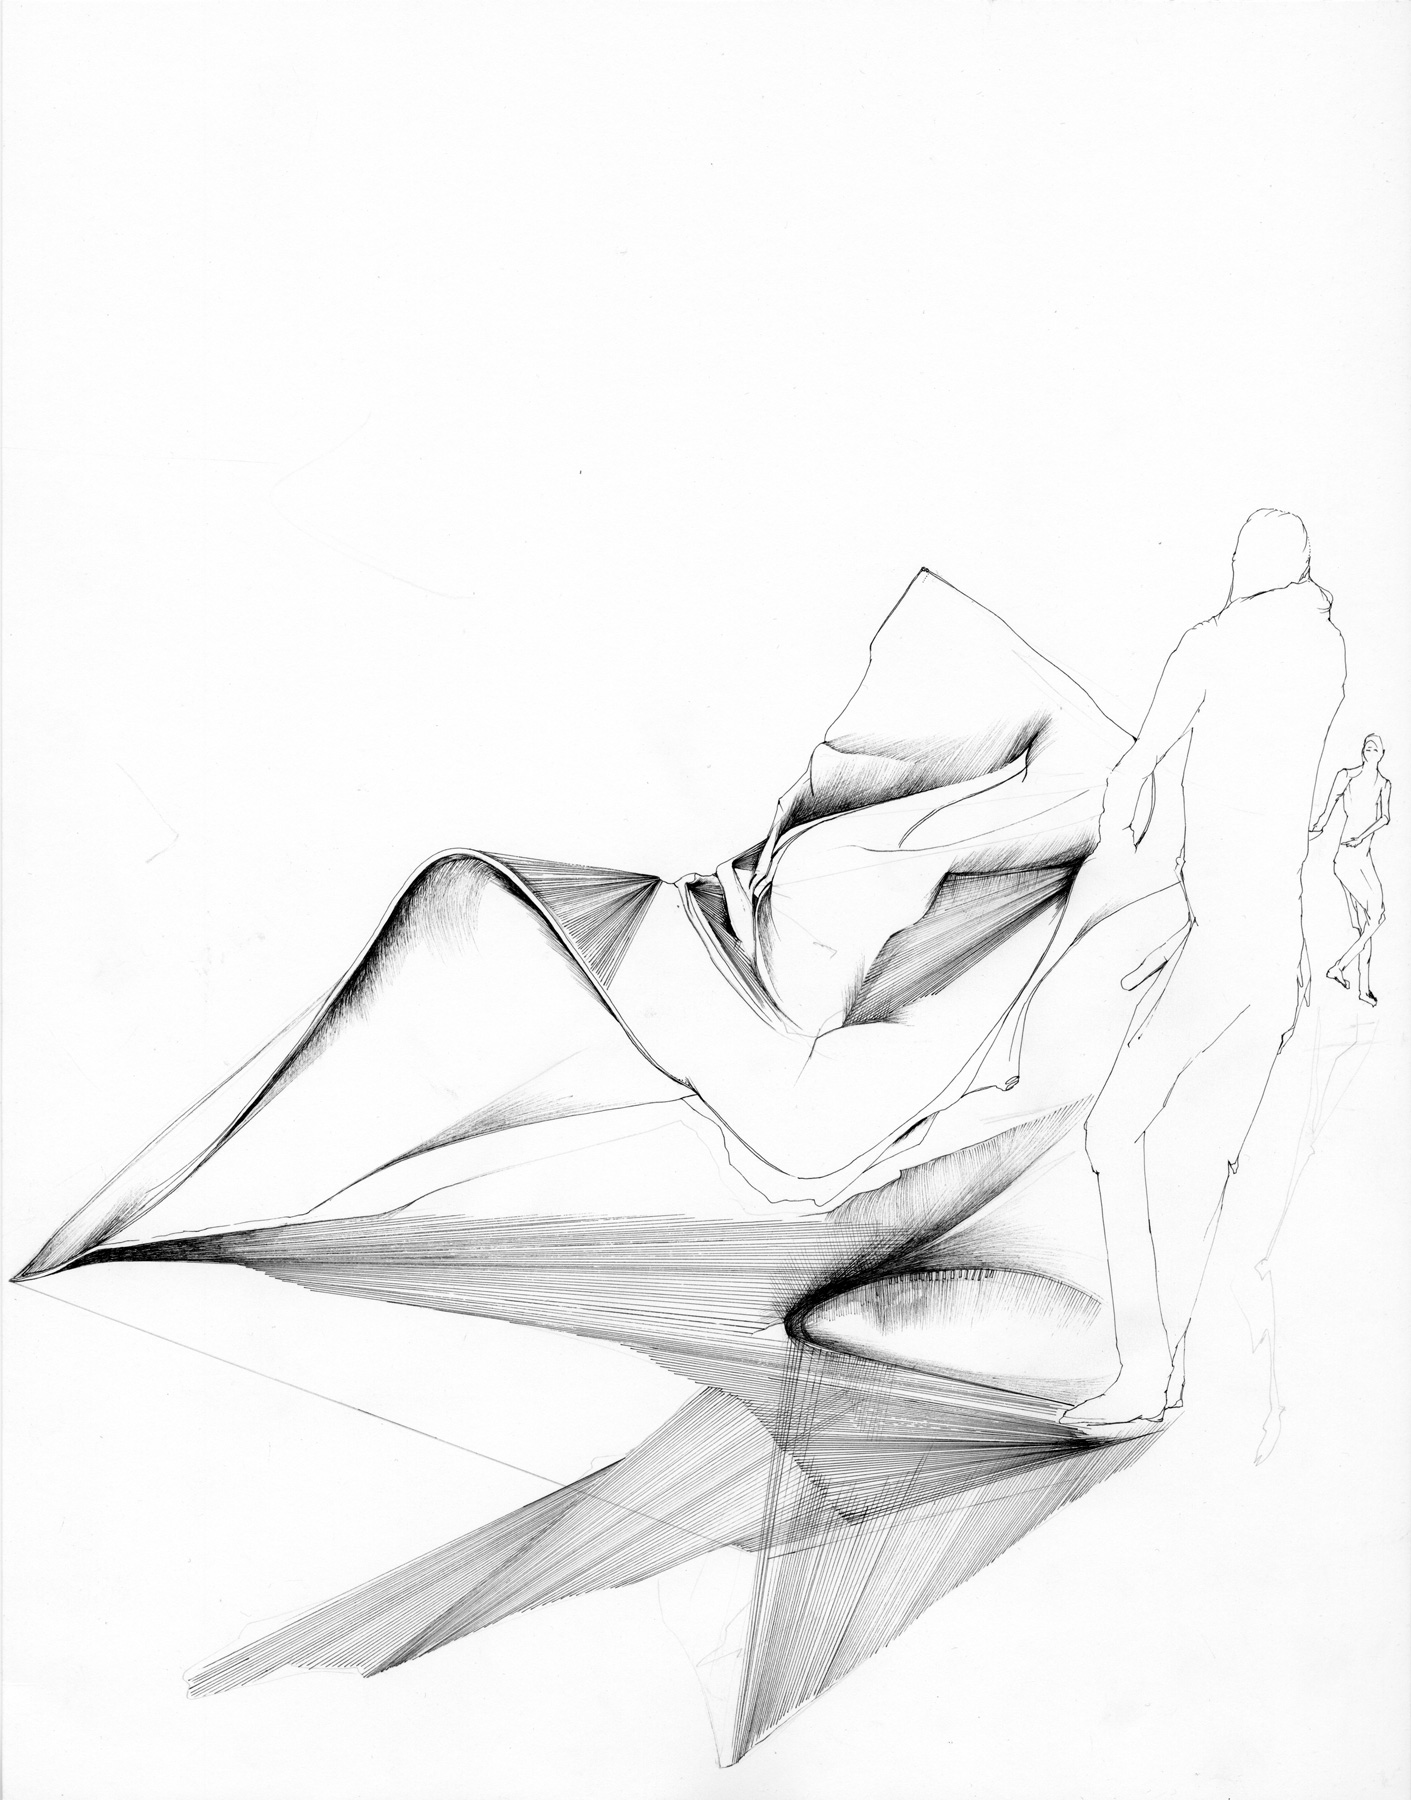 Nina Annabelle Märkl | Deconstruction of Possible Spaces | Ink on Paper | 35,5 x 27,5 cm | 2016